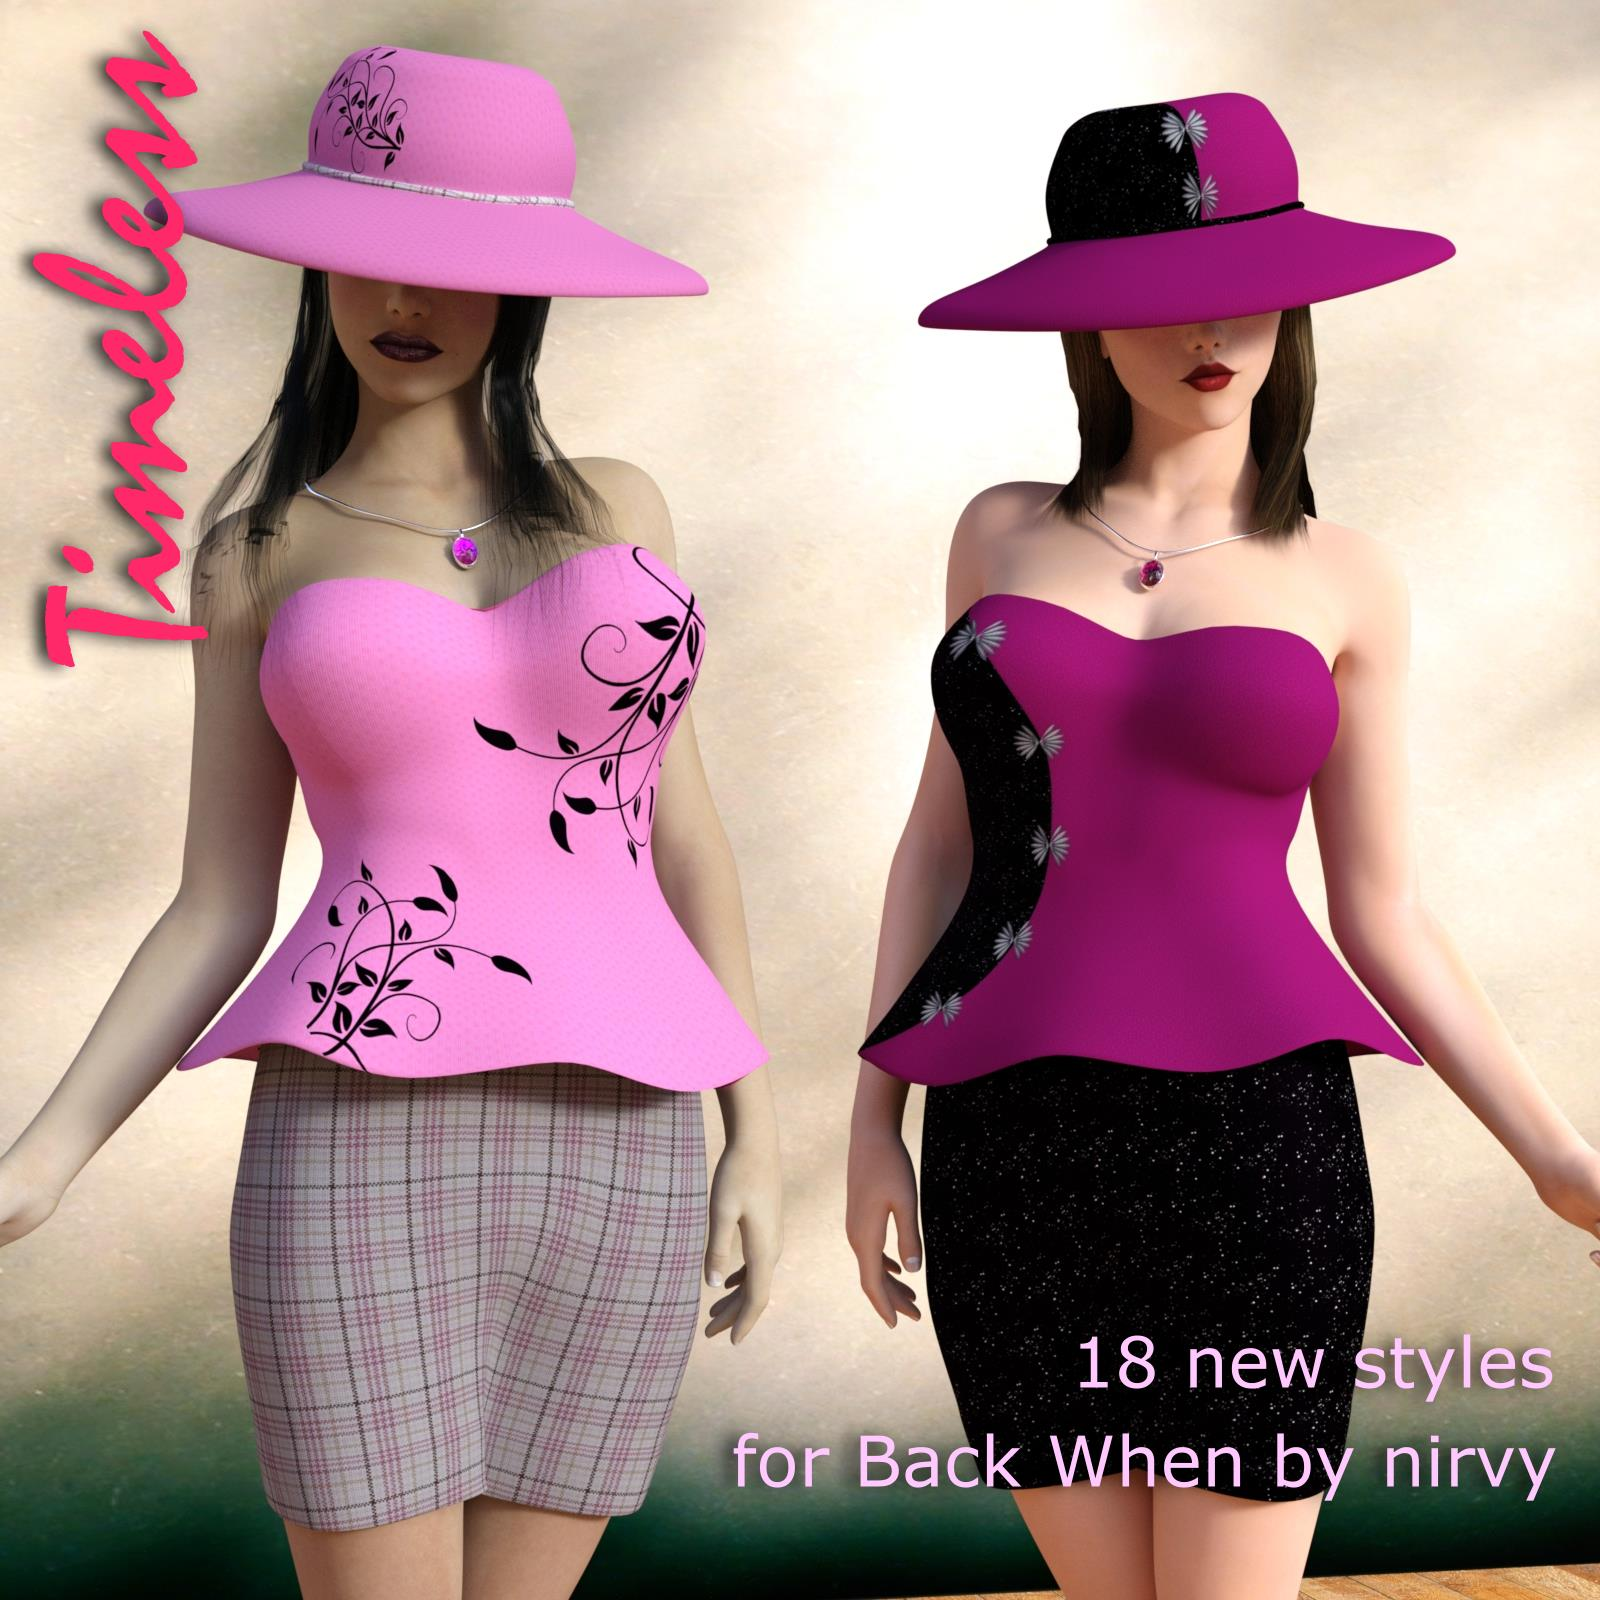 Timeless for BackWhen by nirvy